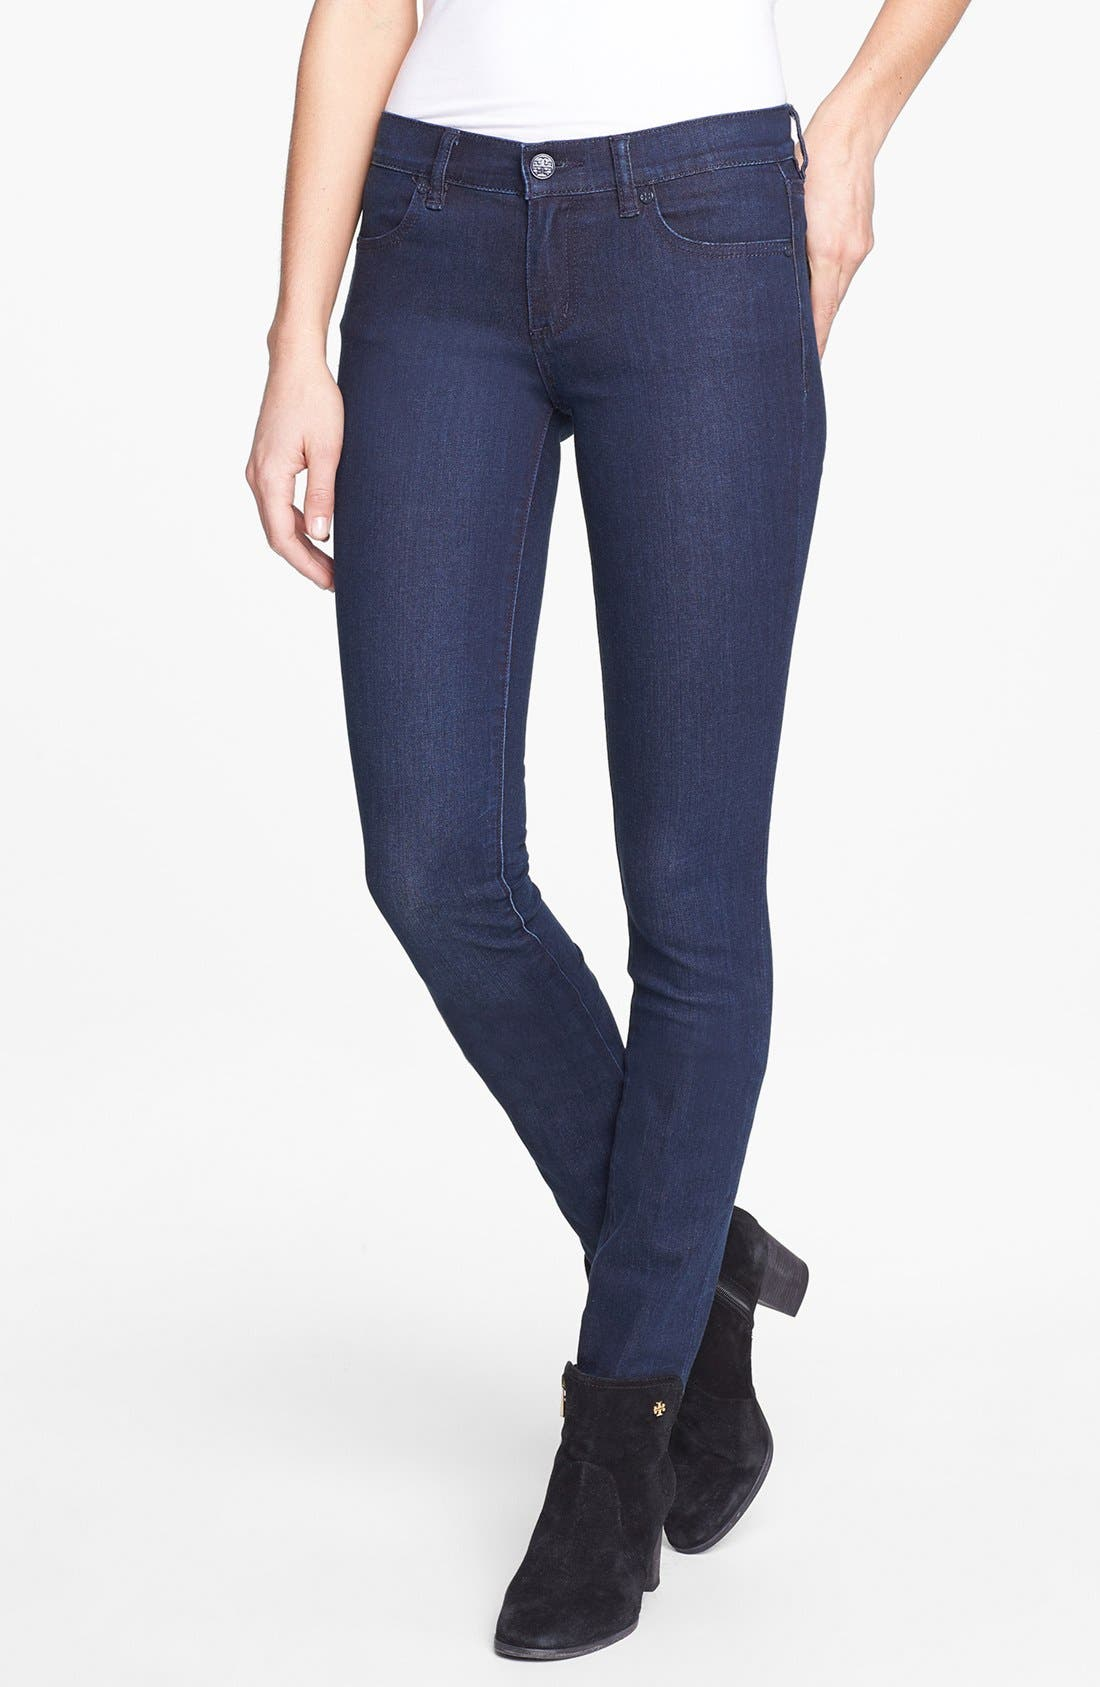 Alternate Image 1 Selected - Tory Burch Stretch Skinny Jeans (Rinse)